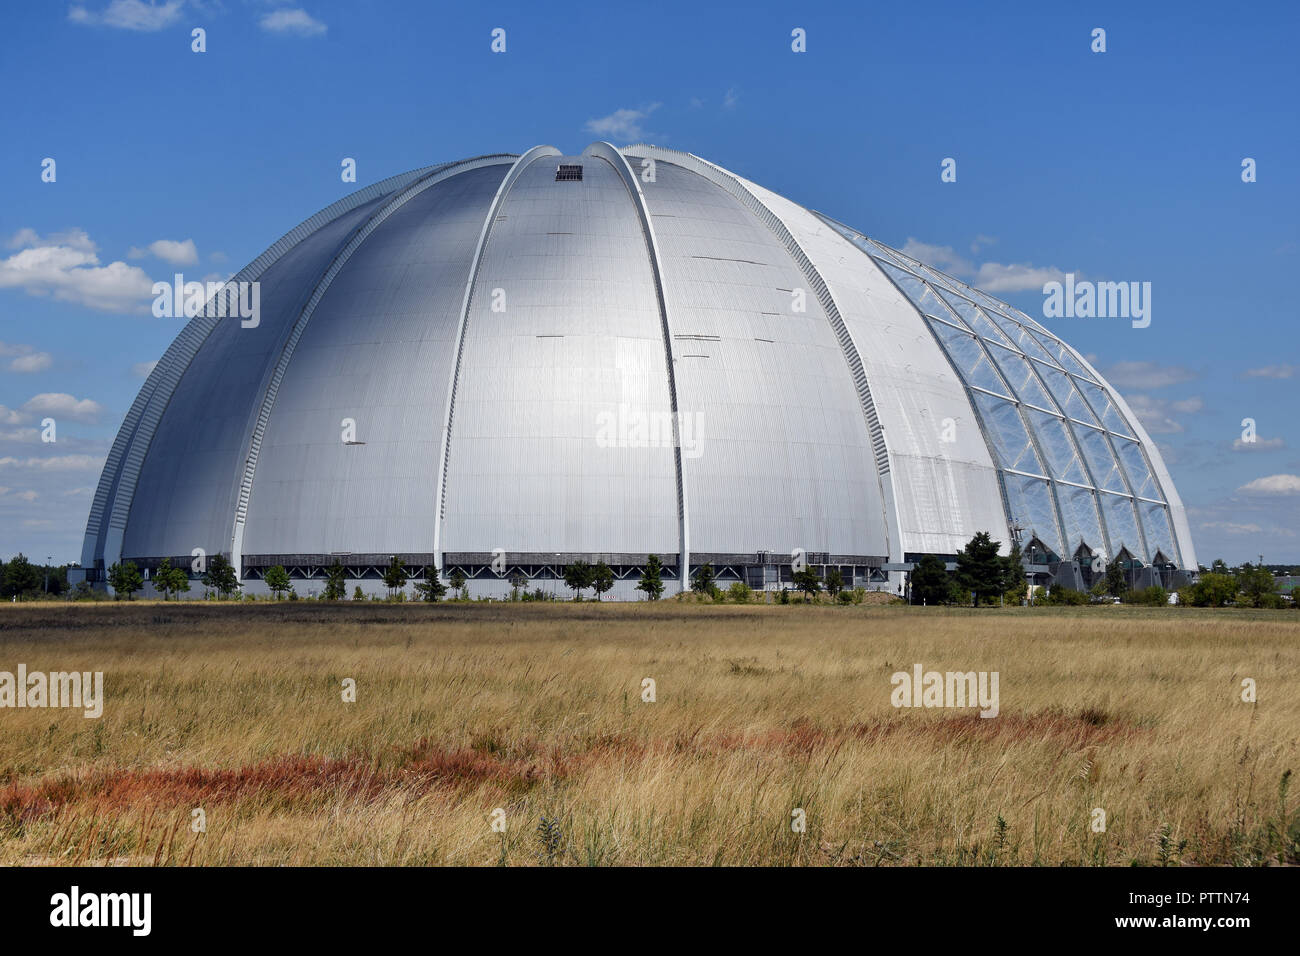 The Tropical Island park installed on the soviet air base runway in Brand, former East Germany. The main part of the park is inside an airship hangar. - Stock Image